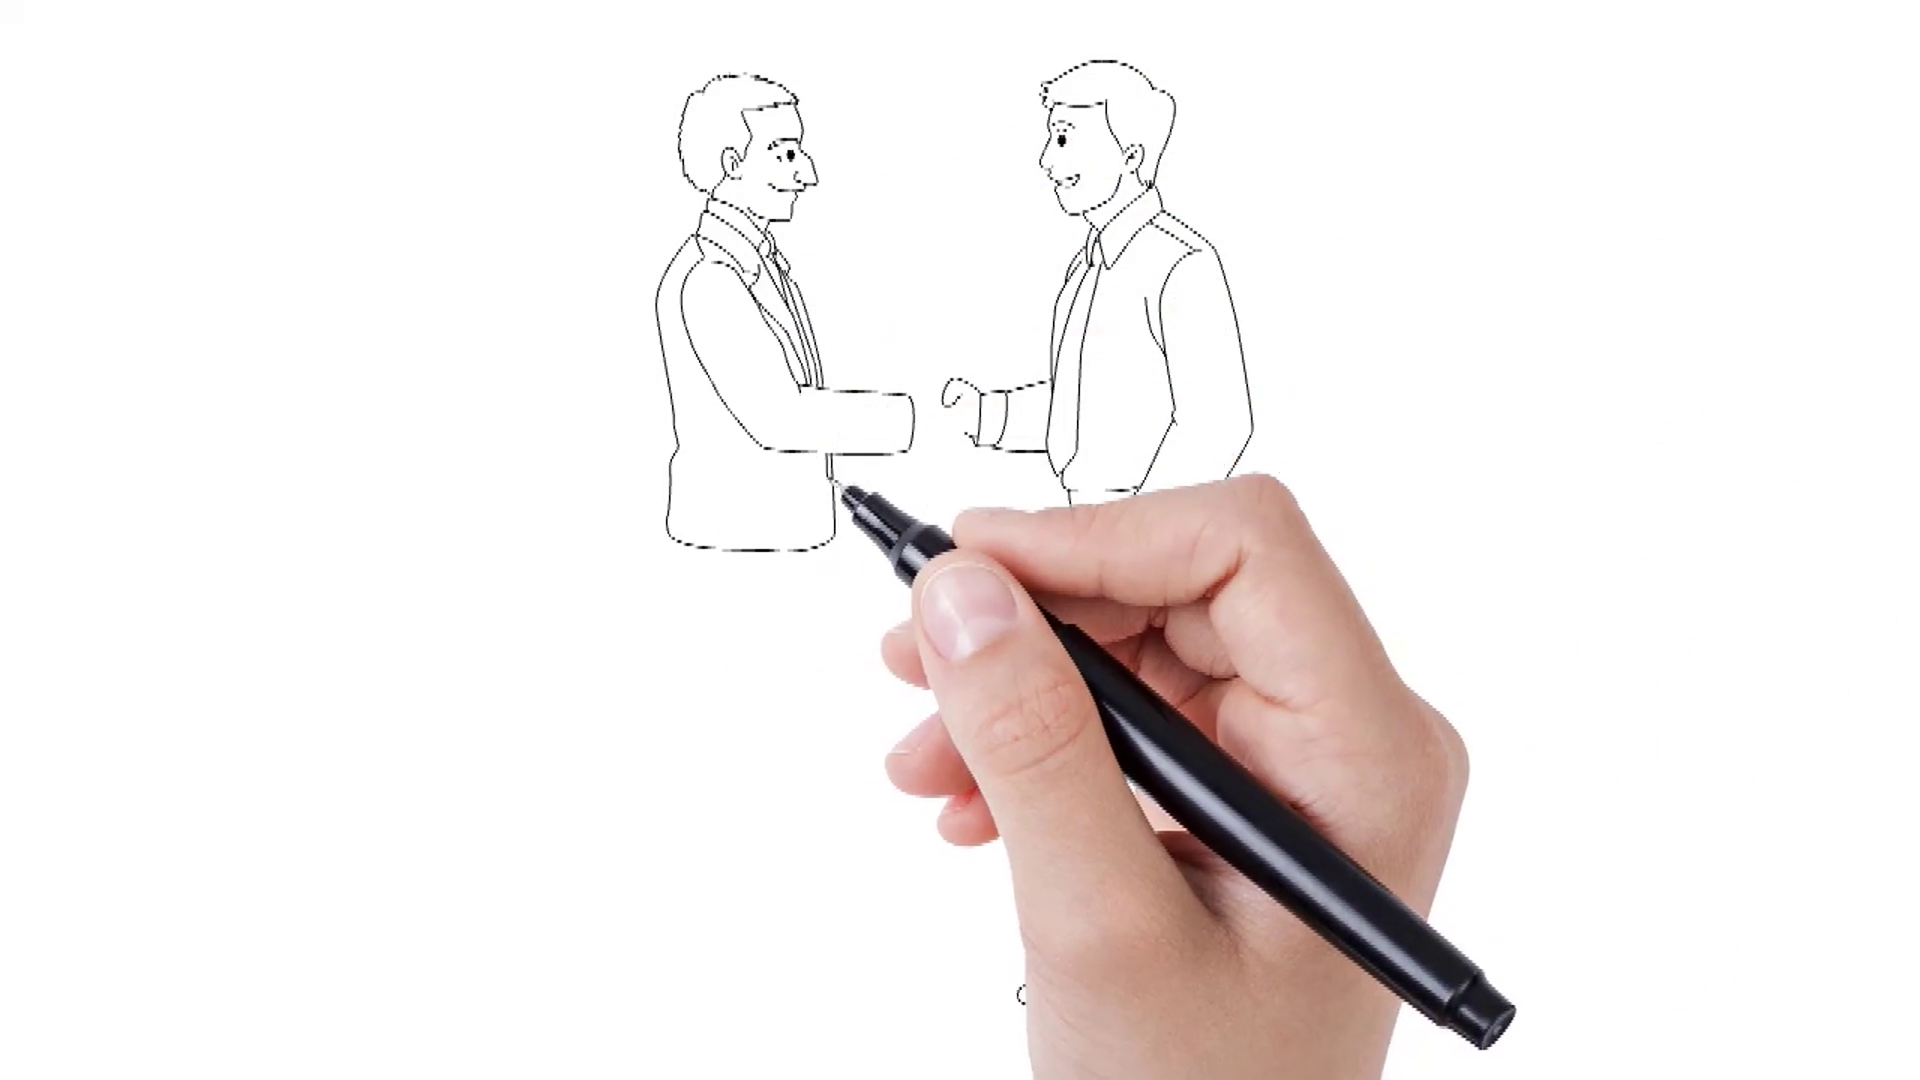 Whiteboard animation of two person hand shaking. Animated sketch of two men  shaking hands. Motion Background.